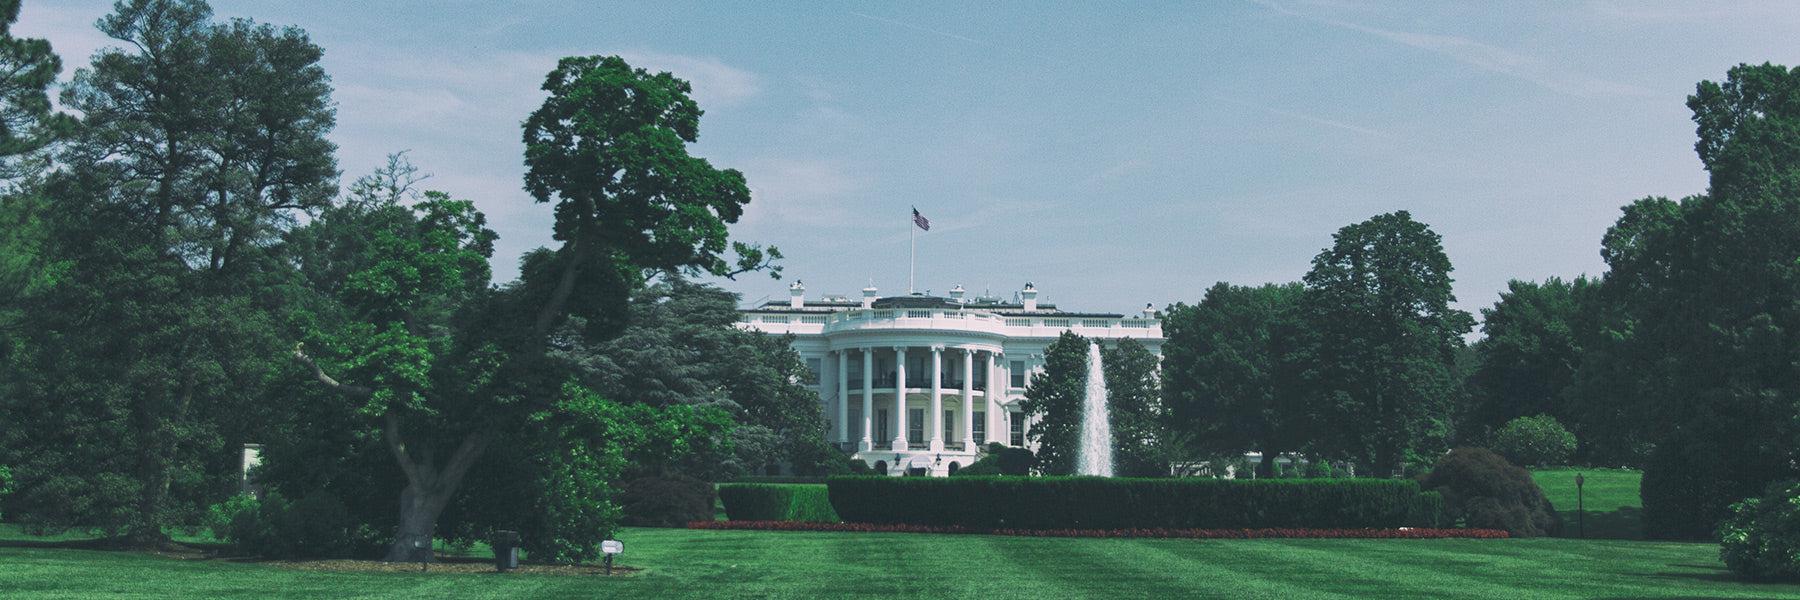 Panoramic photo of the White House